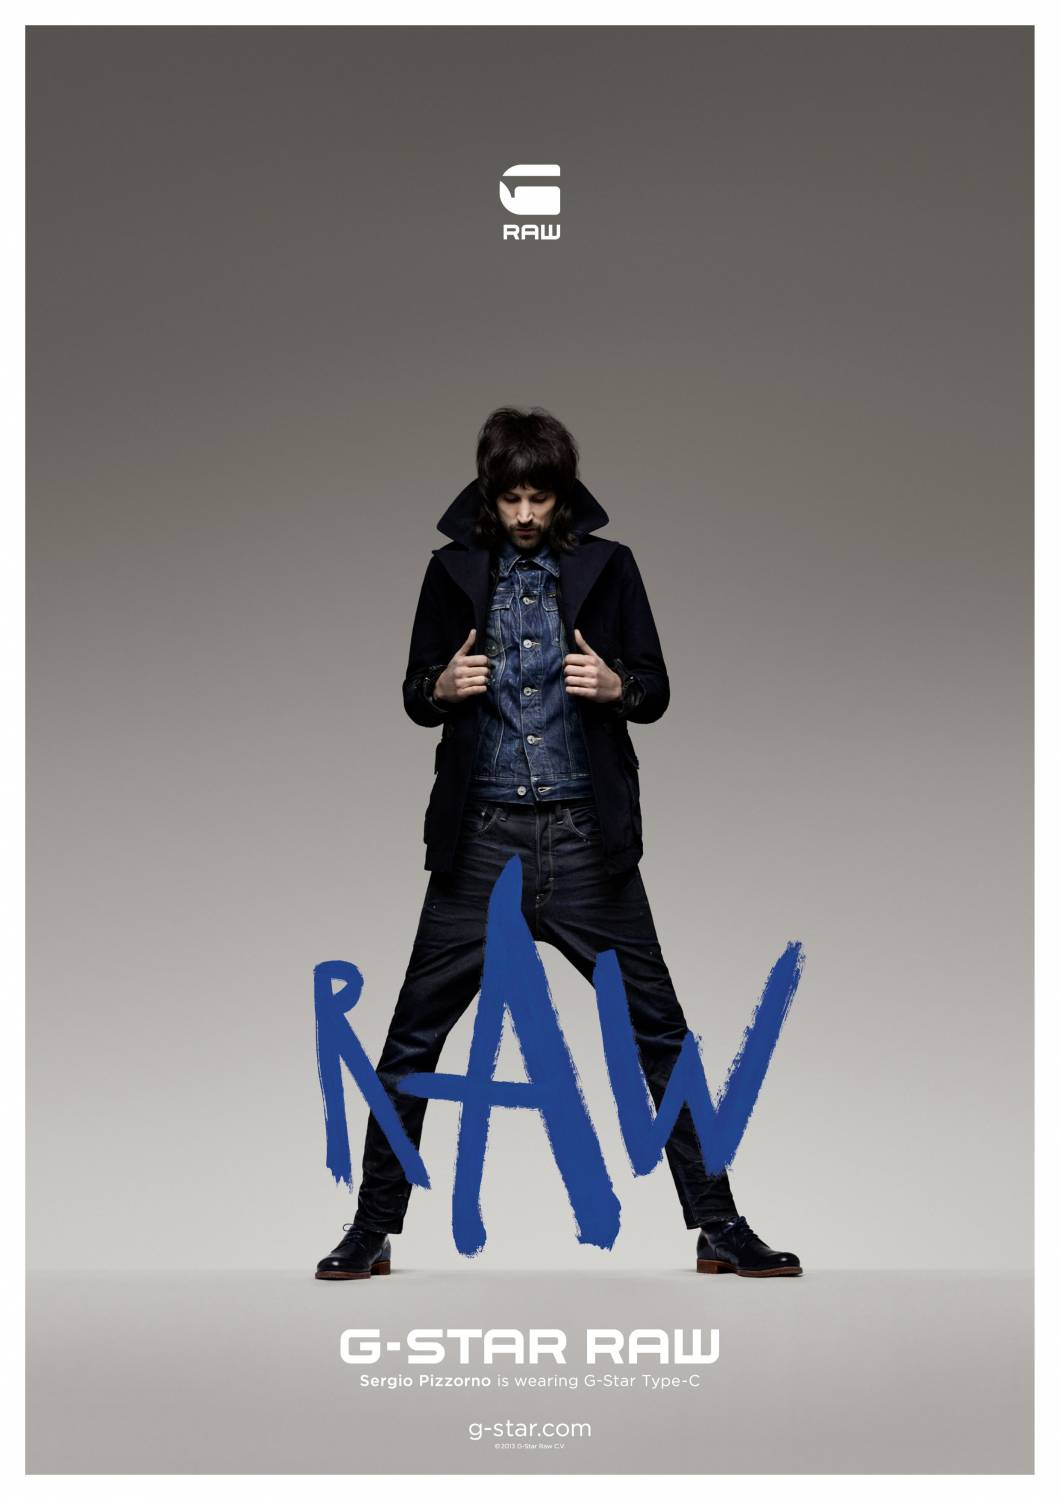 Музыка и видеоролик из рекламы G-Star RAW - AutumnWinter 2013